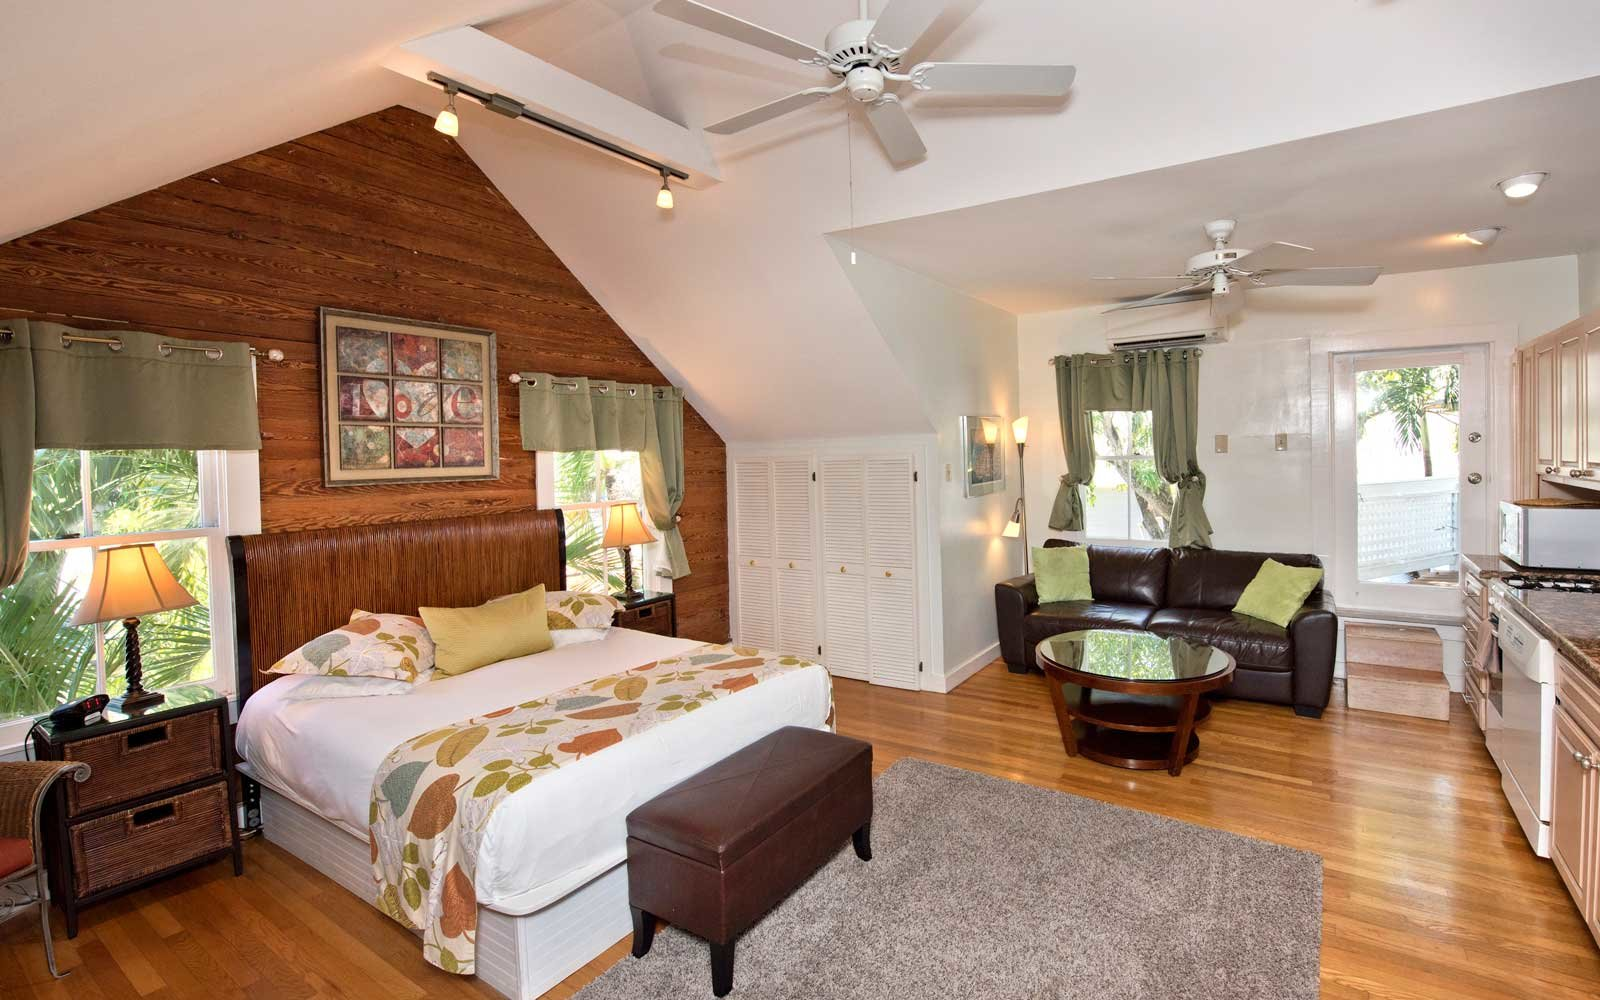 7 Of The Best Value Airbnbs In Key West Travel Leisure